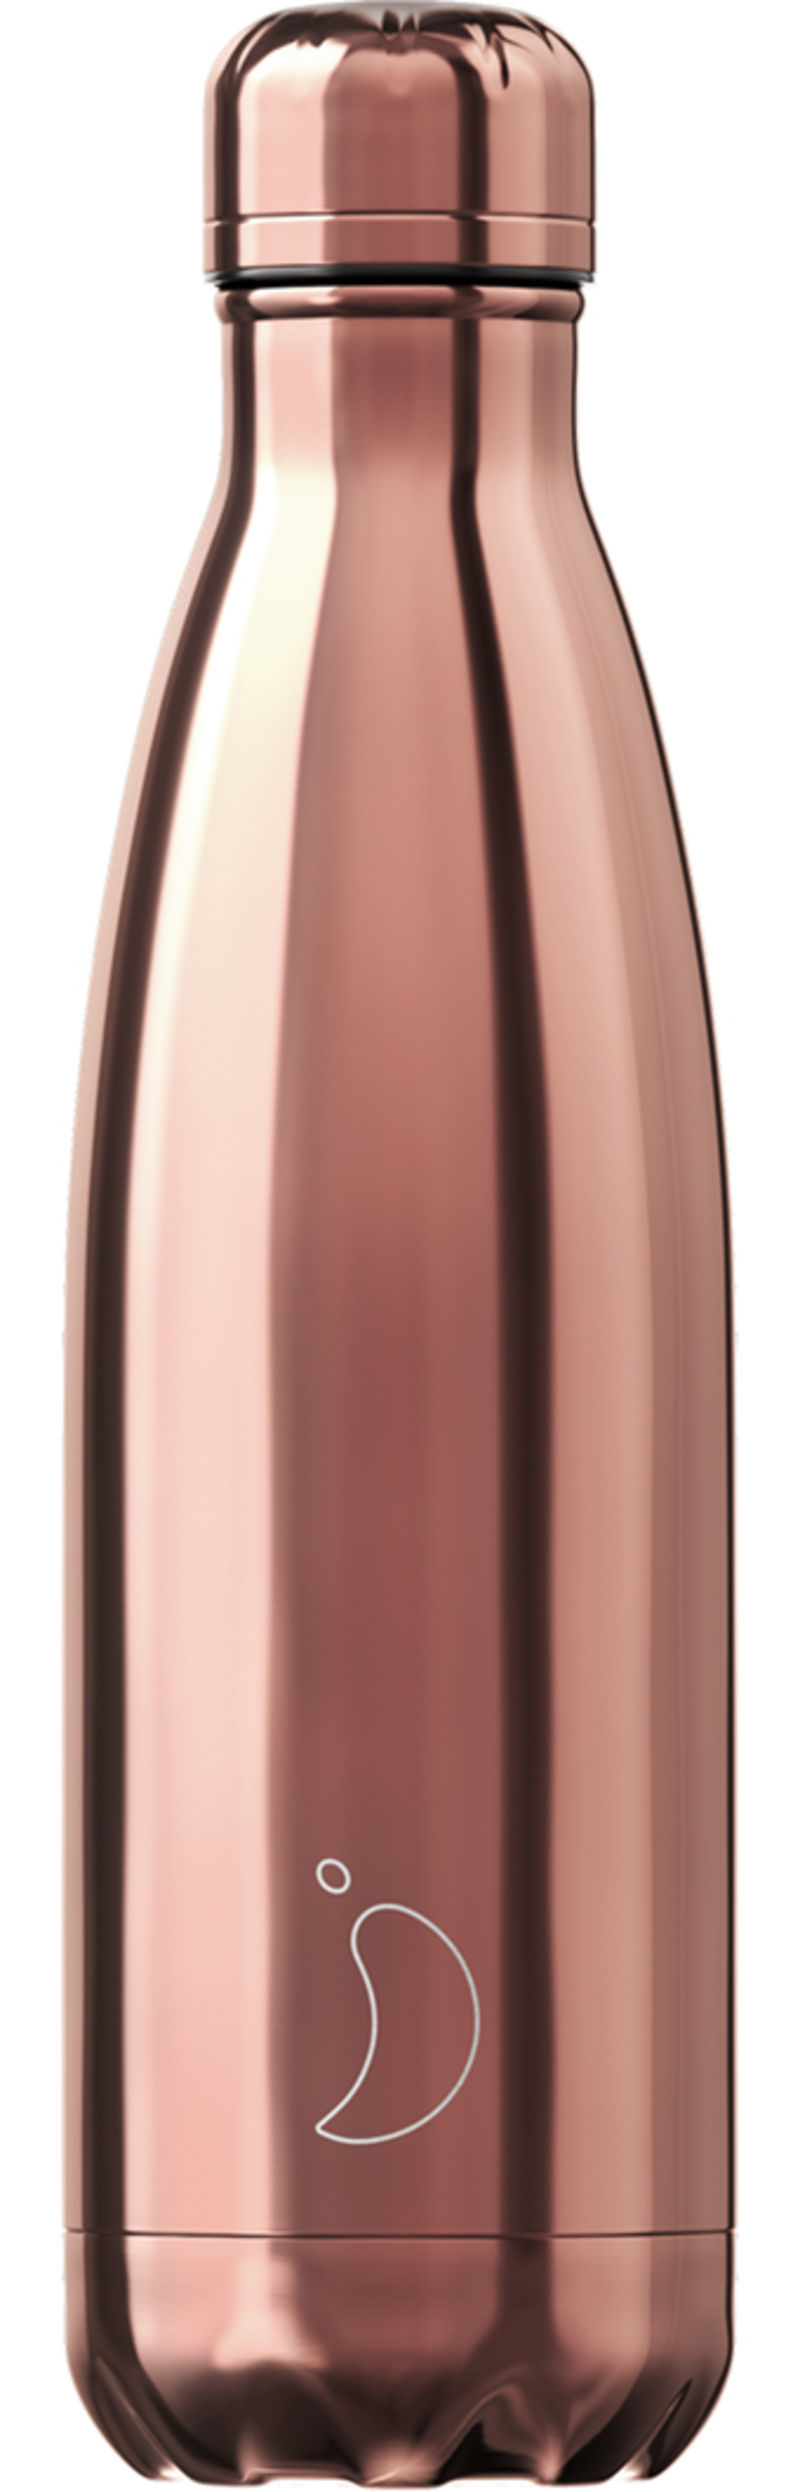 BOTELLA INOX ORO ROSA 260ml